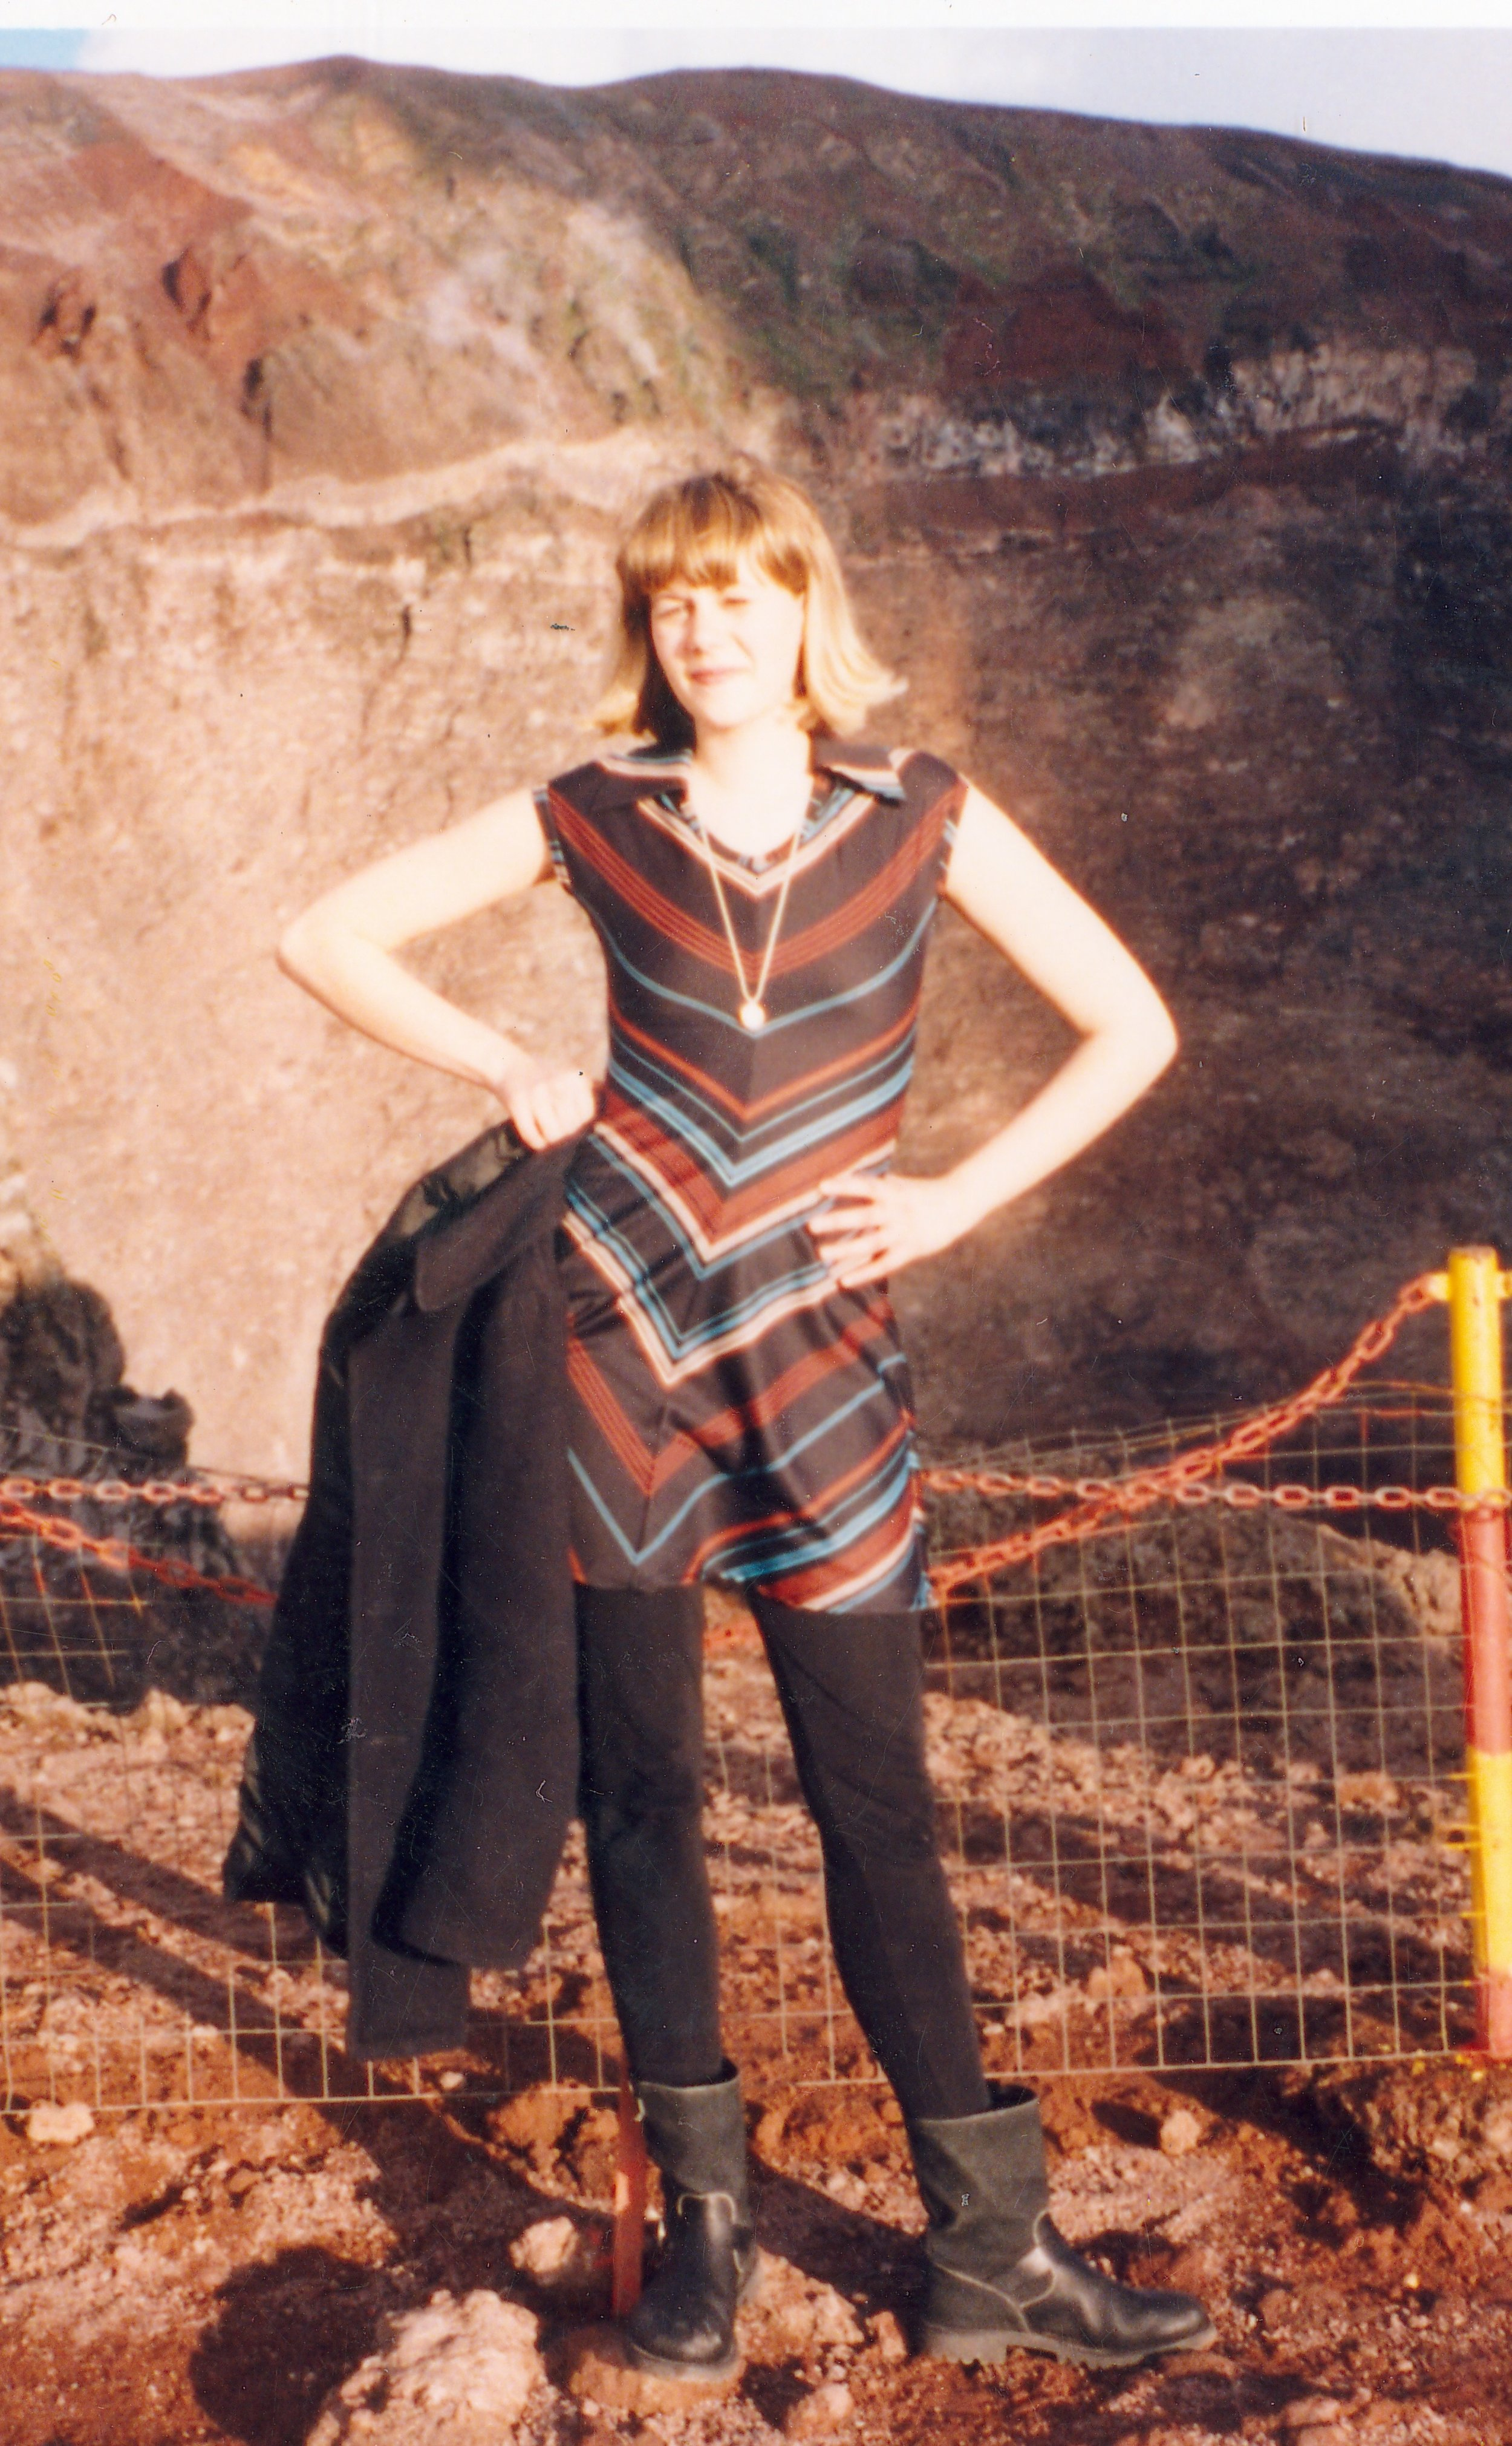 A hike up Mount Vesuvius in a 99-cent, polyester wonder from the Salvation Army in Altoona, PA. Motorcycle boots courtesy of a little shop in Rome. -